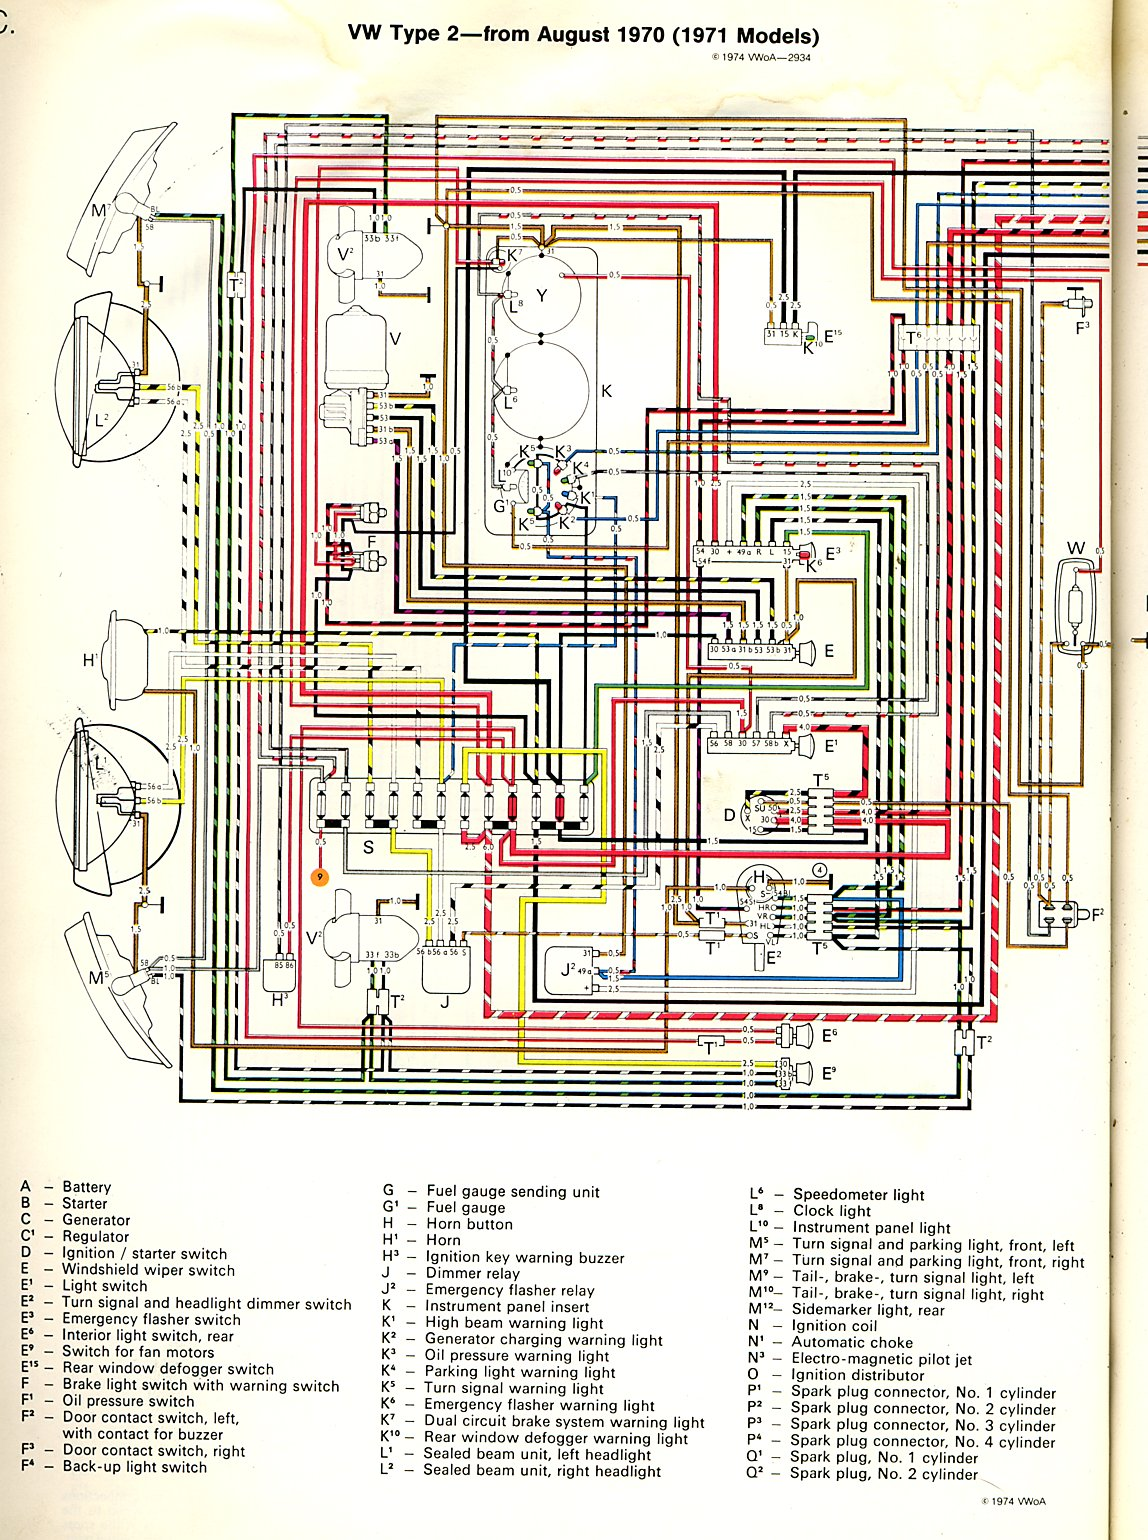 baybus_71a 71 vw bus wiring diagram 1970 vw bus fuse box diagram \u2022 wiring Atlas Connector Wiring at virtualis.co